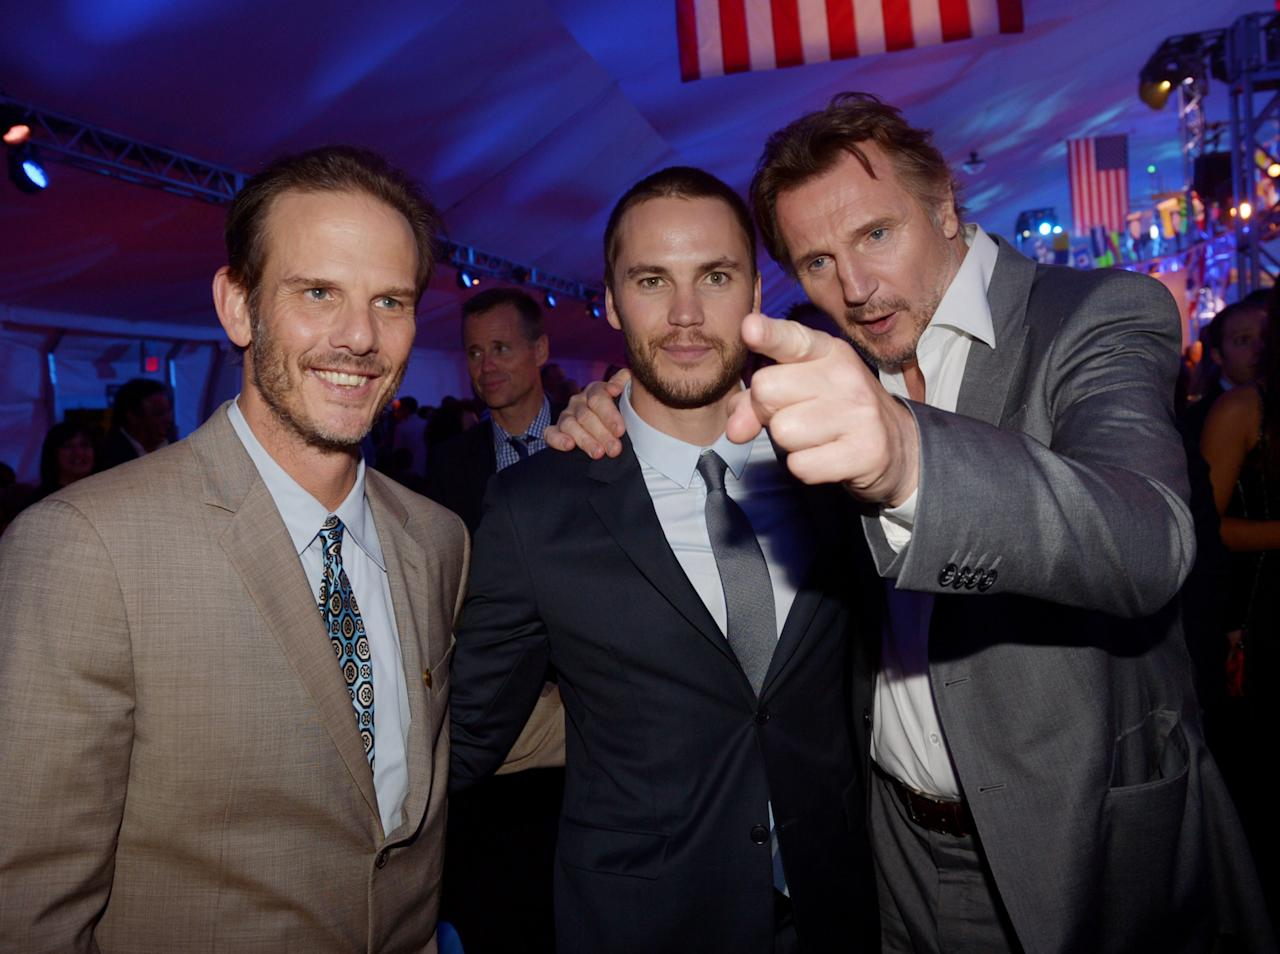 "LOS ANGELES, CA - MAY 10:  (L-R) Producer/director Peter Berg, actors Taylor Kitsch and Liam Neeson pose at the after party for the premiere of Universal Pictures' ""Battleship"" at L.A. Live on May 10, 2012 in Los Angeles, California.  (Photo by Kevin Winter/Getty Images)"